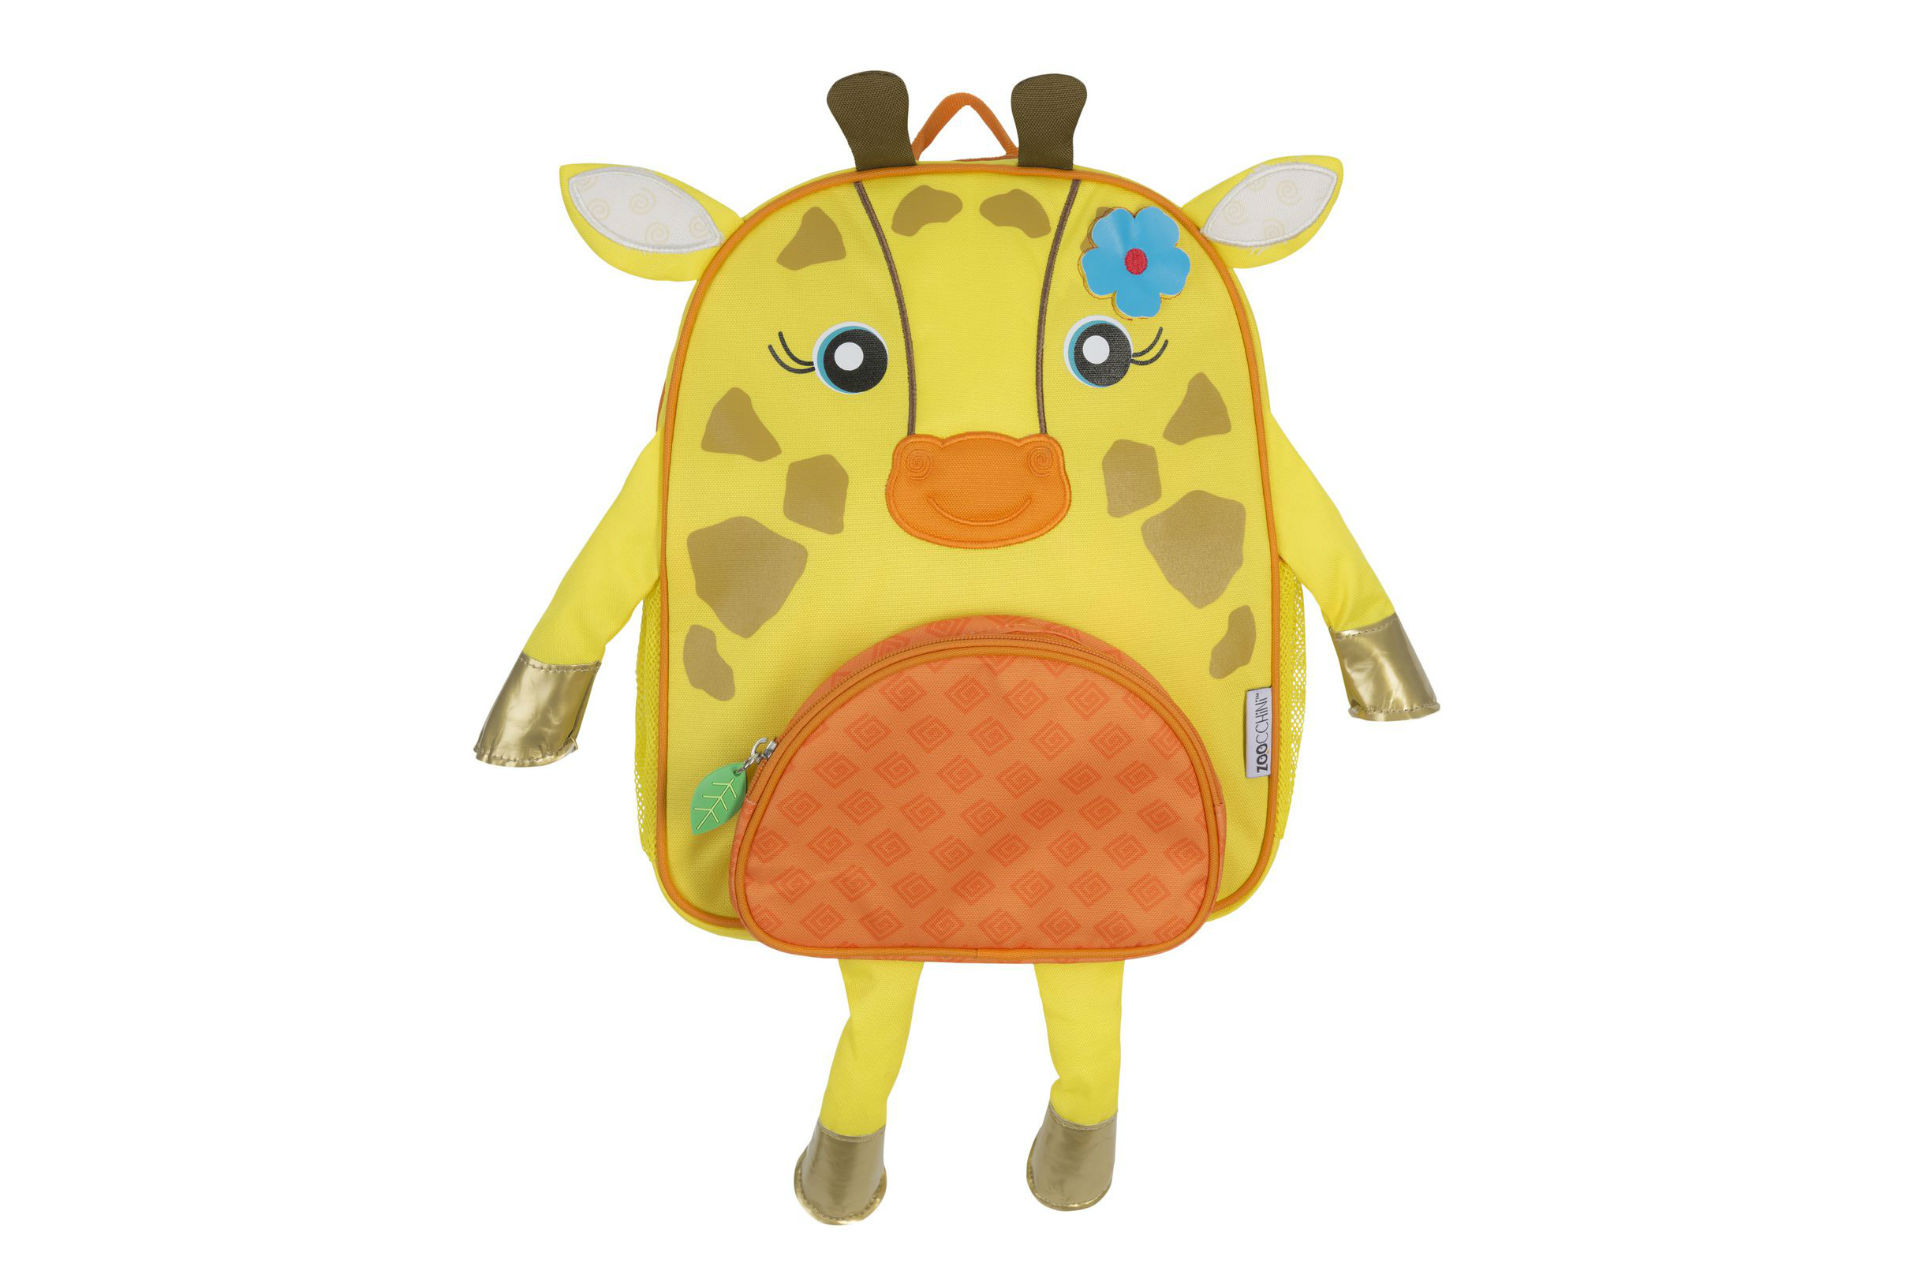 yellow giraffe-shaped backpack with arms and legs